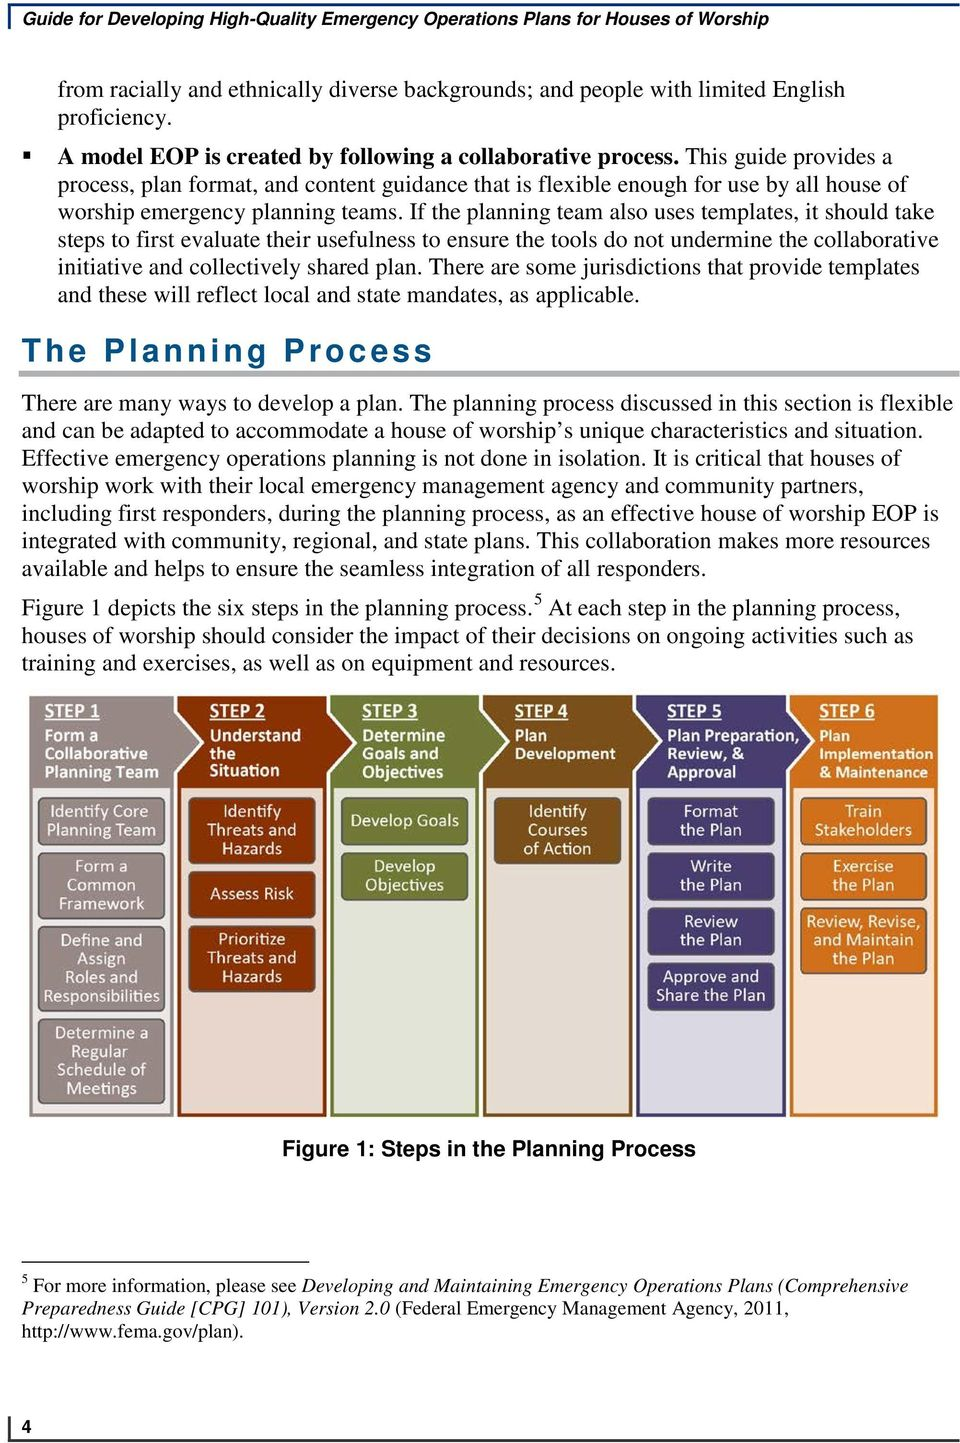 If the planning team also uses templates, it should take steps to first evaluate their usefulness to ensure the tools do not undermine the collaborative initiative and collectively shared plan.